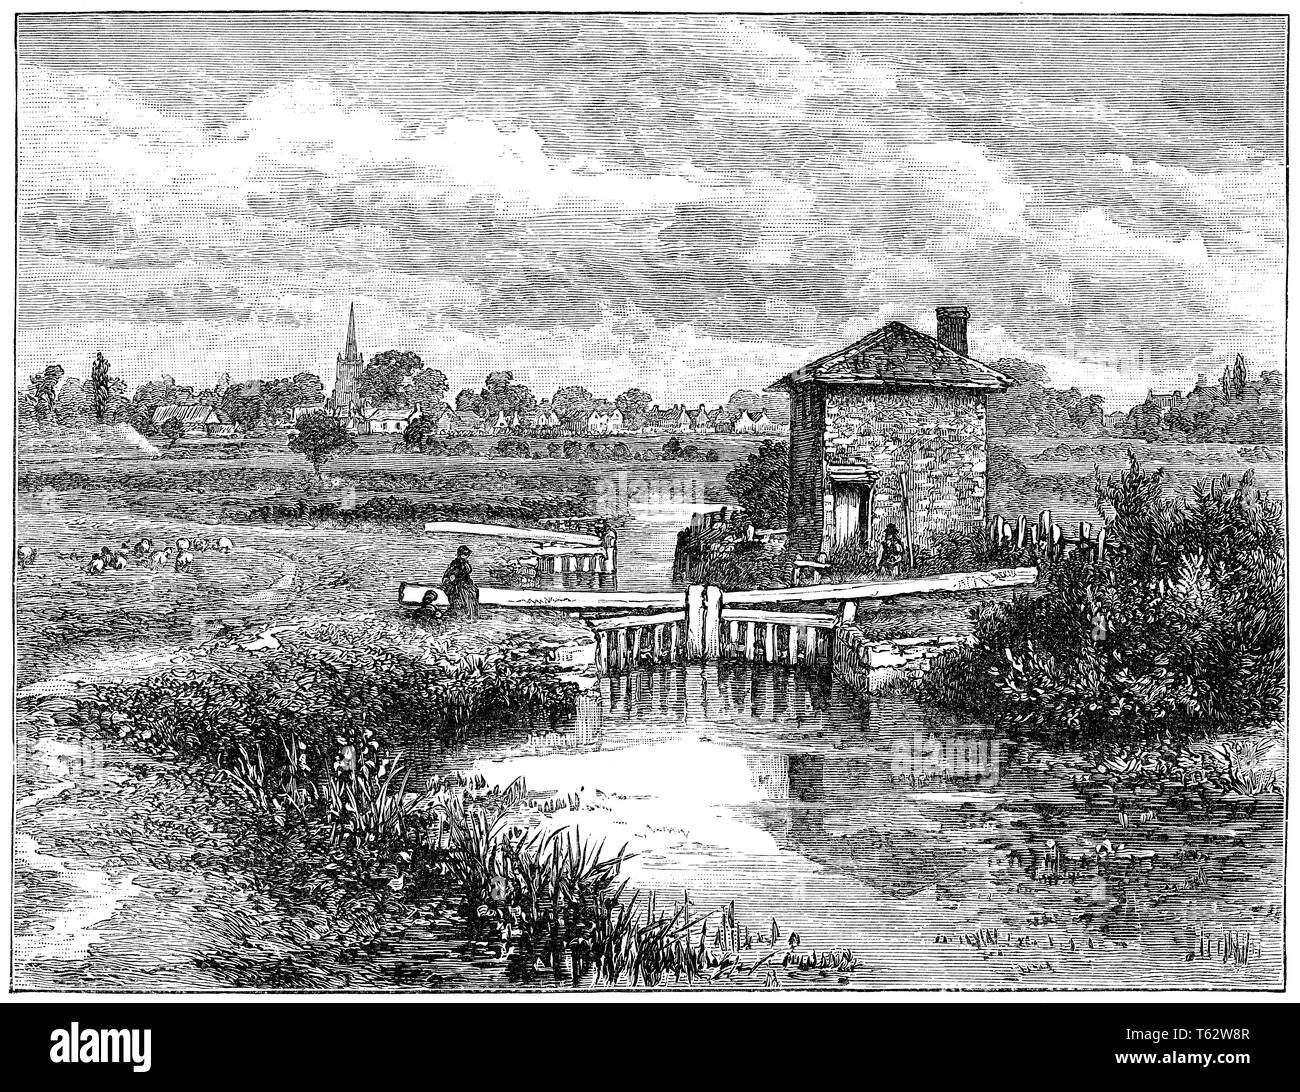 1891 engraving of St. John's Lock at Lechlade, Gloucestershire, on the River Thames. - Stock Image